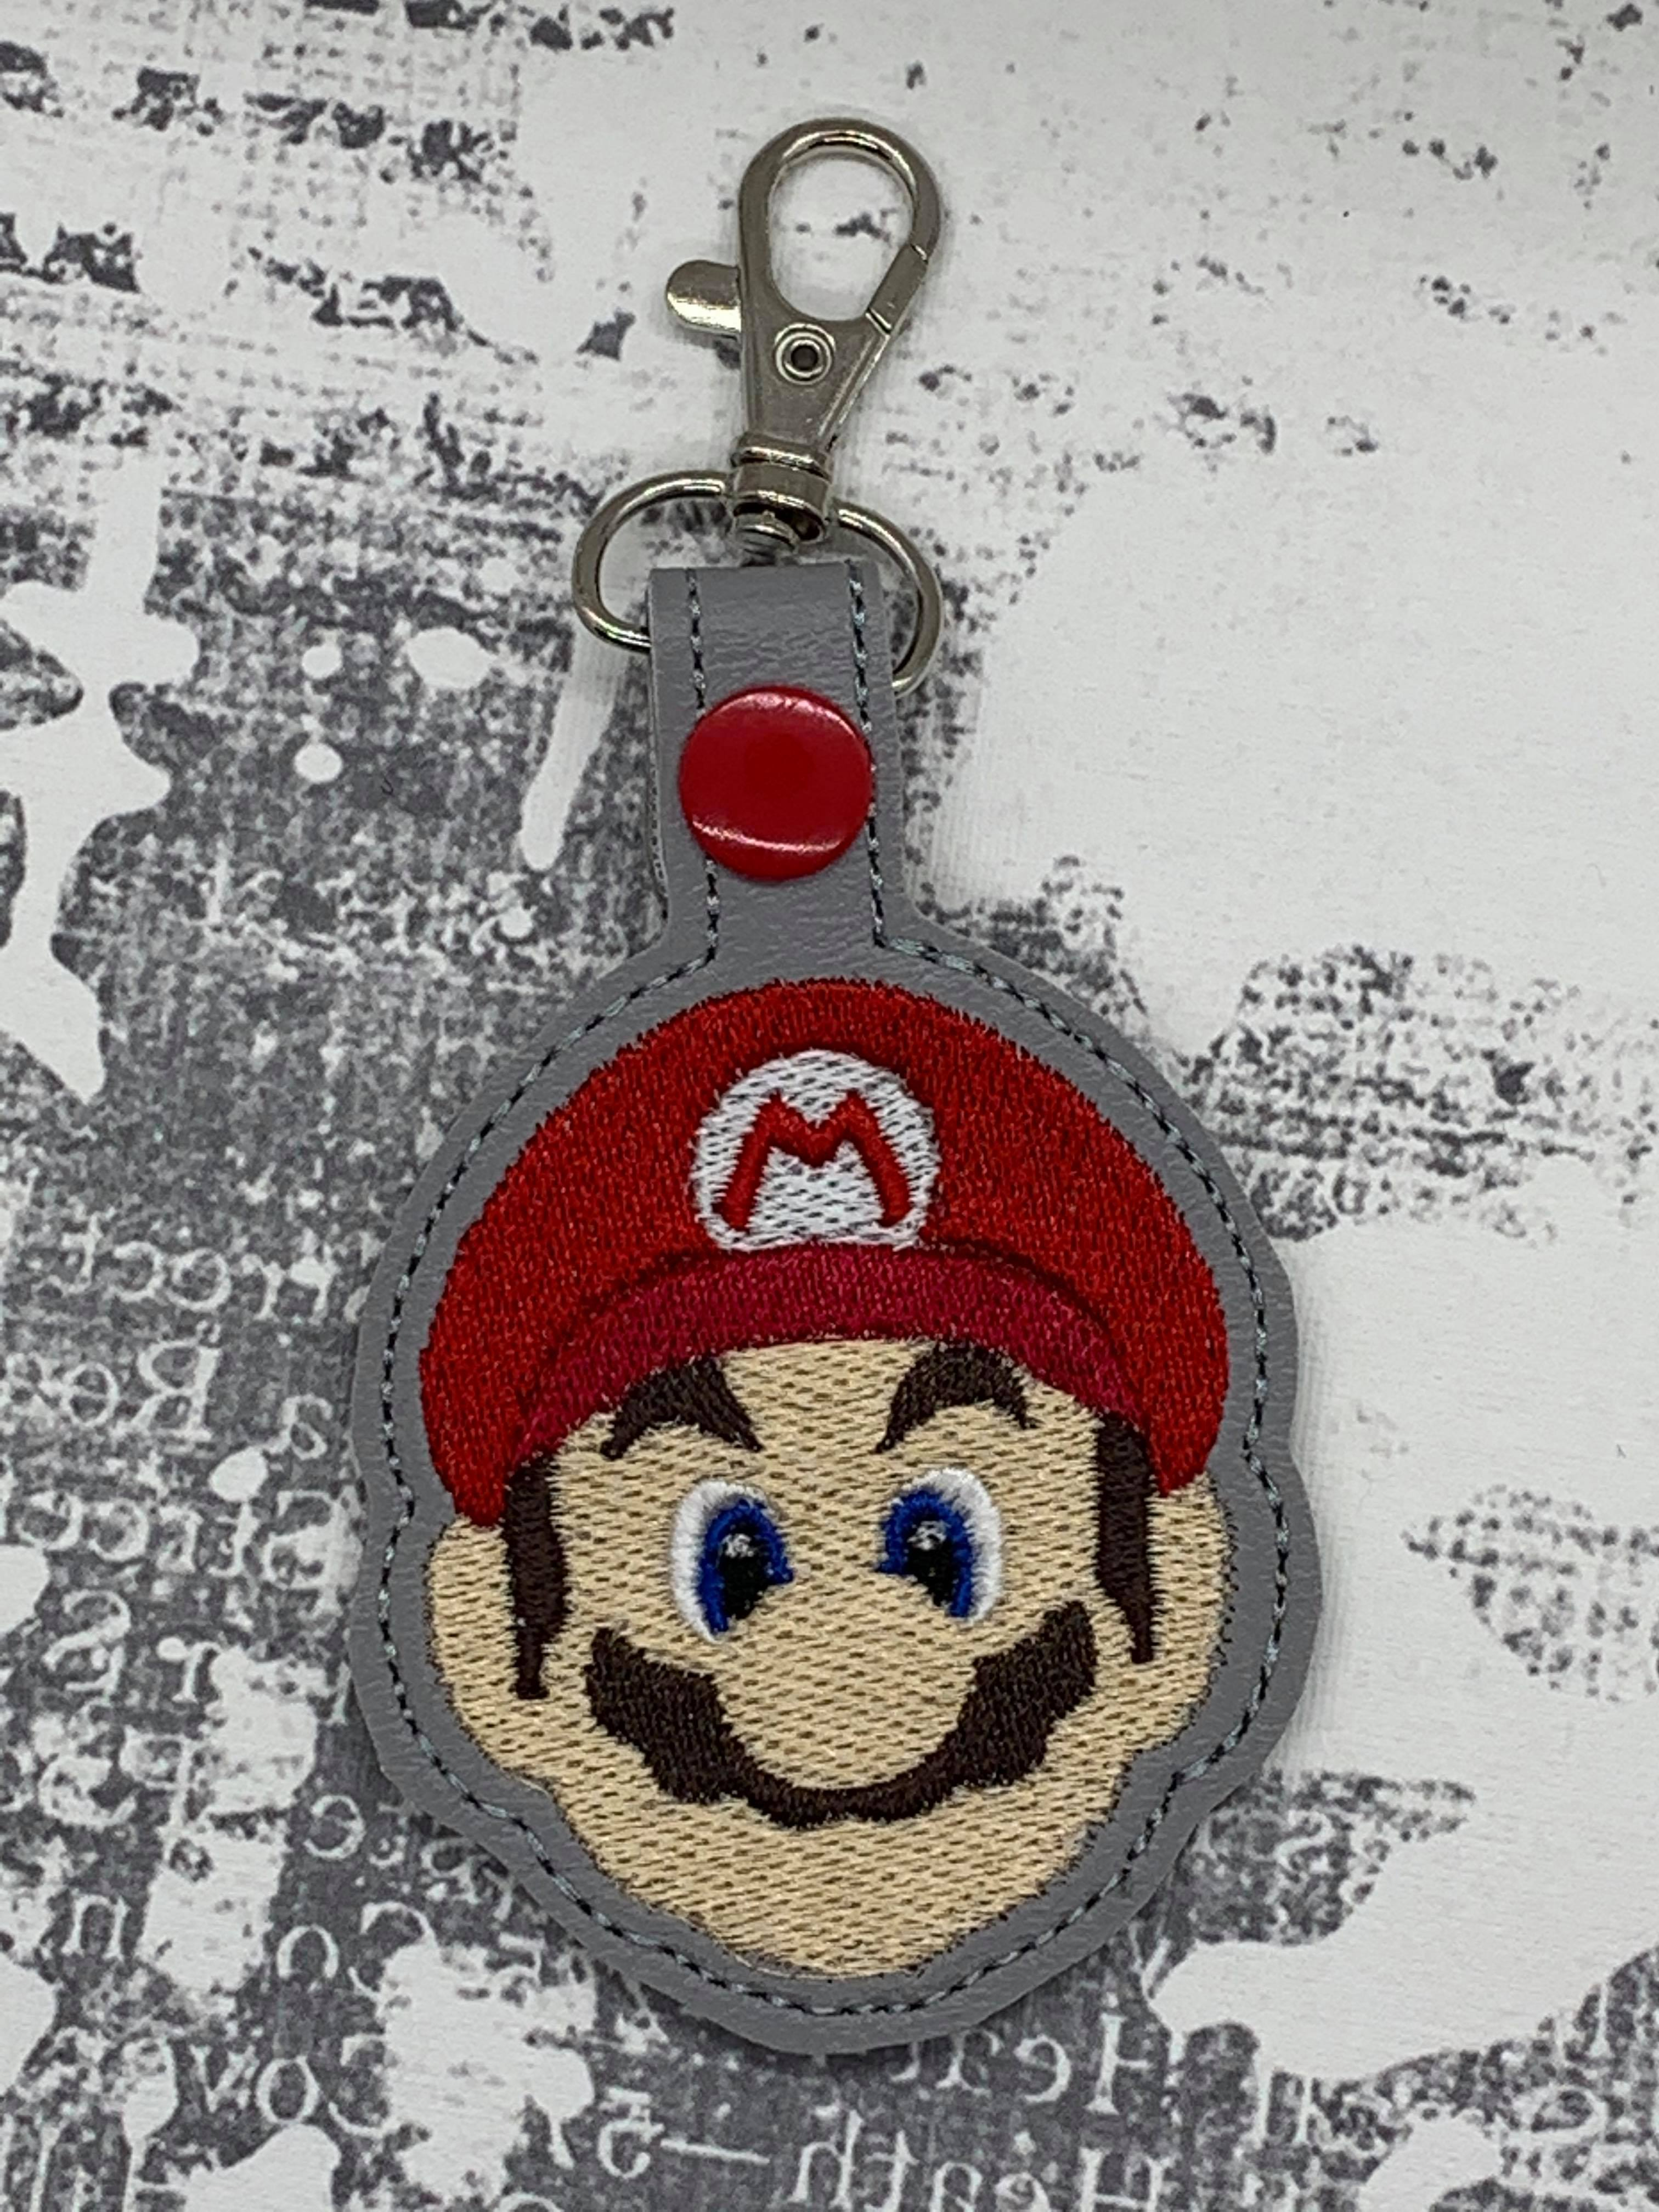 Mario Face Snaptab / Keyfob Embroidery Design